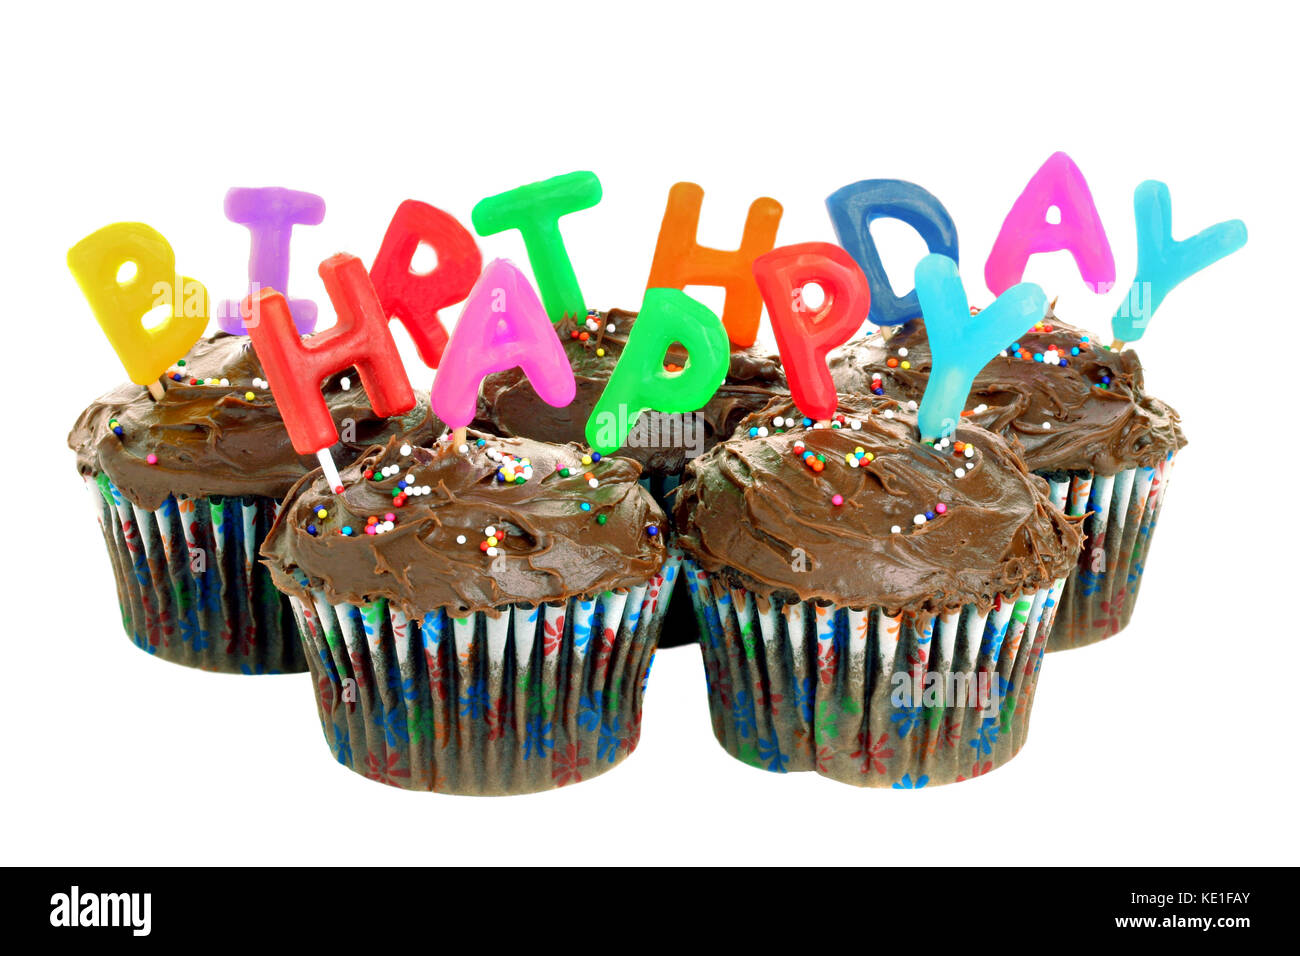 Five Chocolate Cupcakes With Candles That Spell Out Happy Birthday